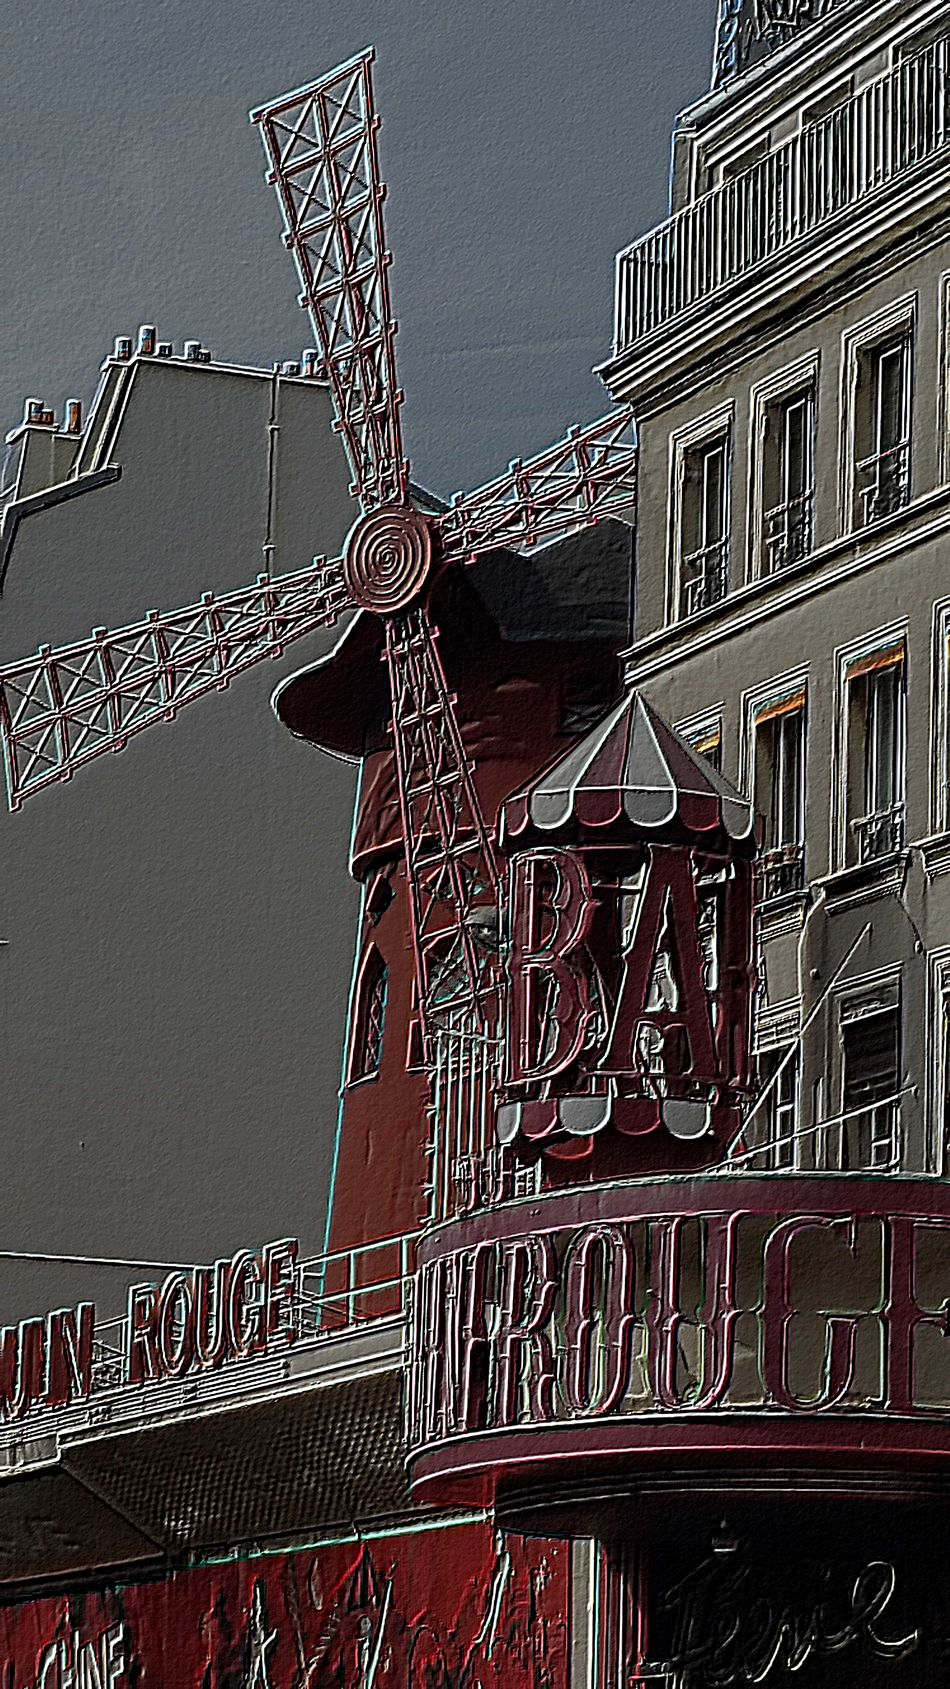 Architectural Feature Architecture Building Building Exterior Built Structure Can Can City Clear Sky Connection Construction Site Day Low Angle View Metal Metallic Moulin Rouge Moulin Rouge Paris No People Outdoors Paris Scene Railing Red Residential Building Sky Window